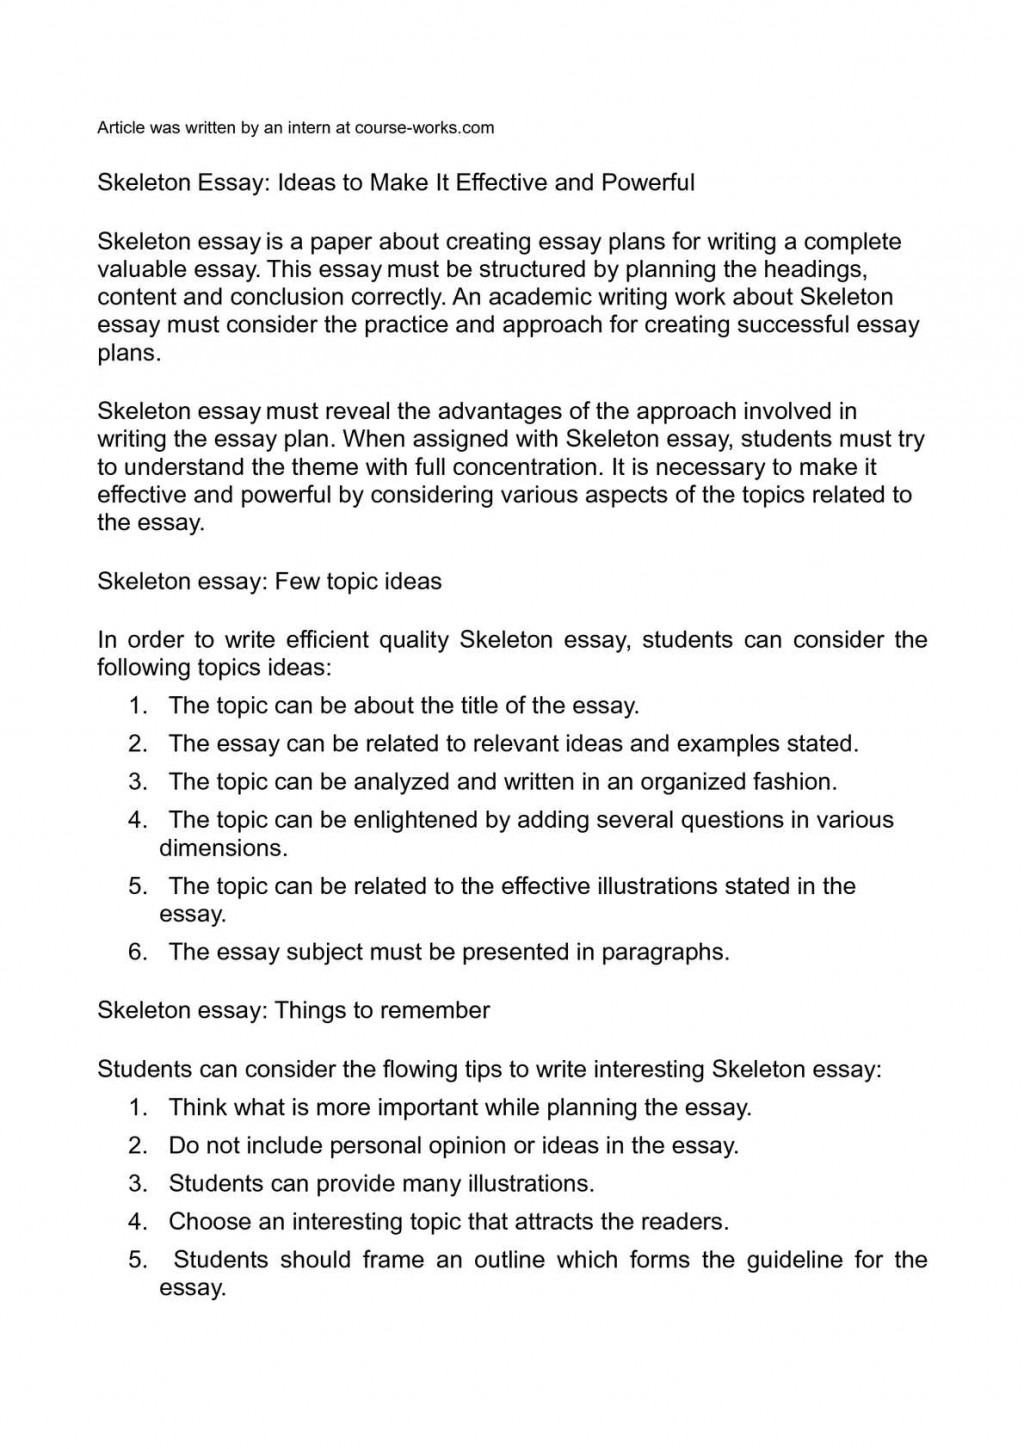 016 Research Paper P1 Easy Sensational Topic Topics For Psychology To Write About Good Biology Large